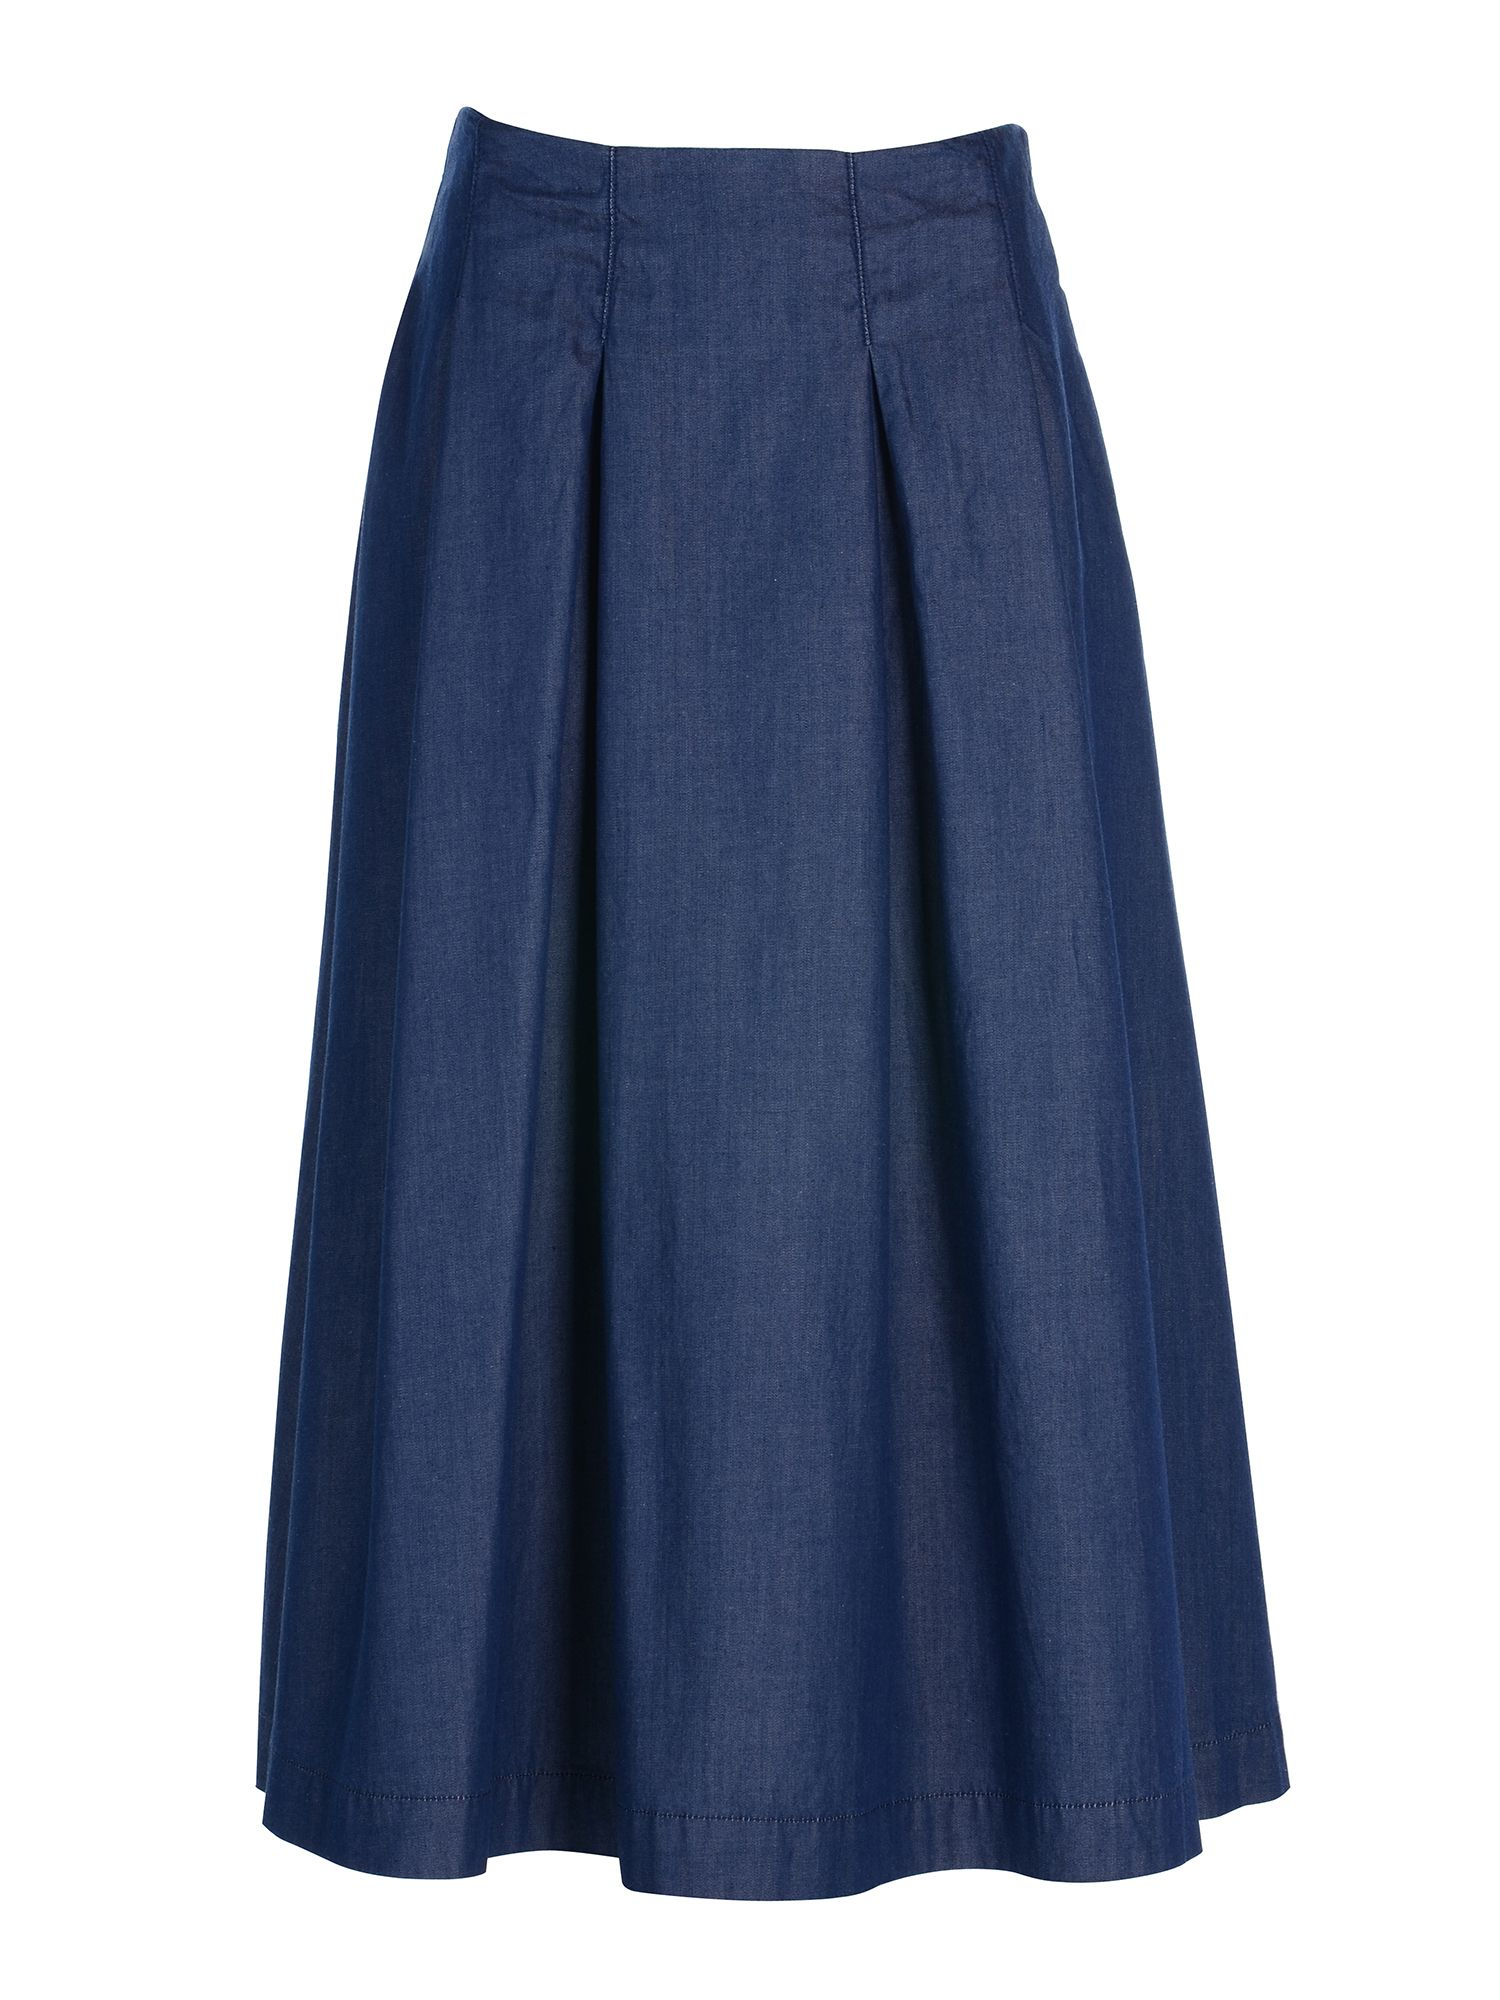 Stefanel Light Denim Skirt, Blue